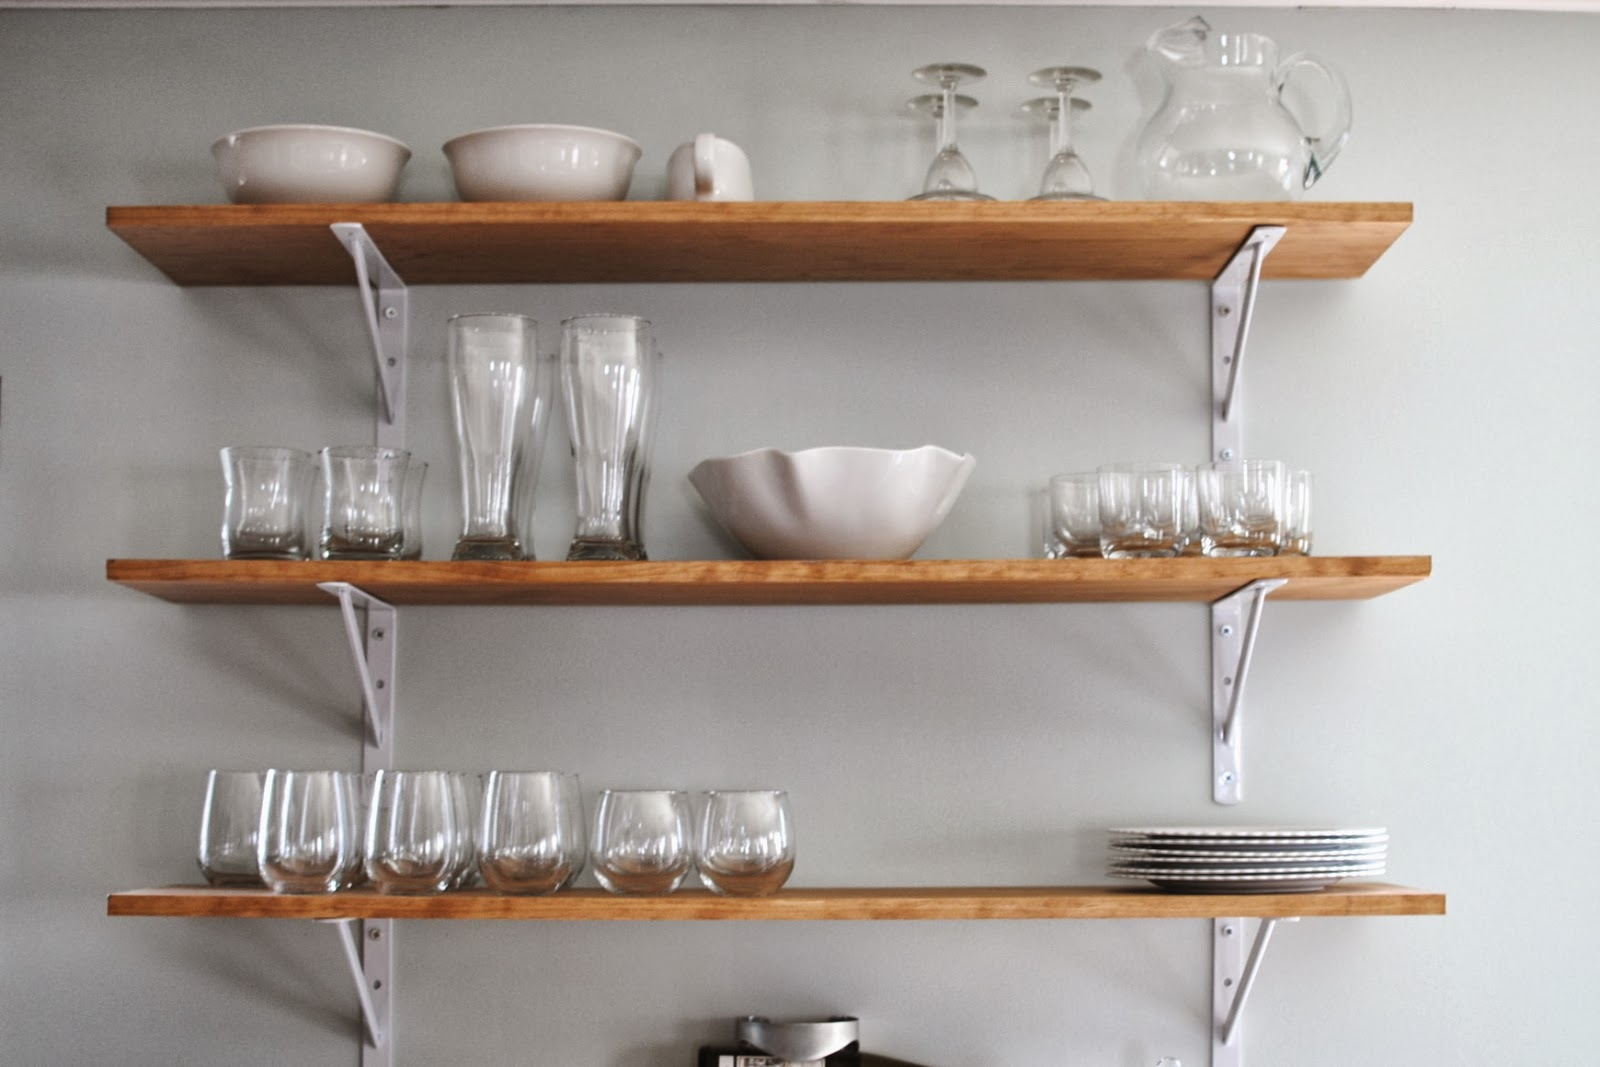 Decorative Kitchen Shelf Shelving Fixer Upper A Craftsman Remodel For Coffeehouse Owners